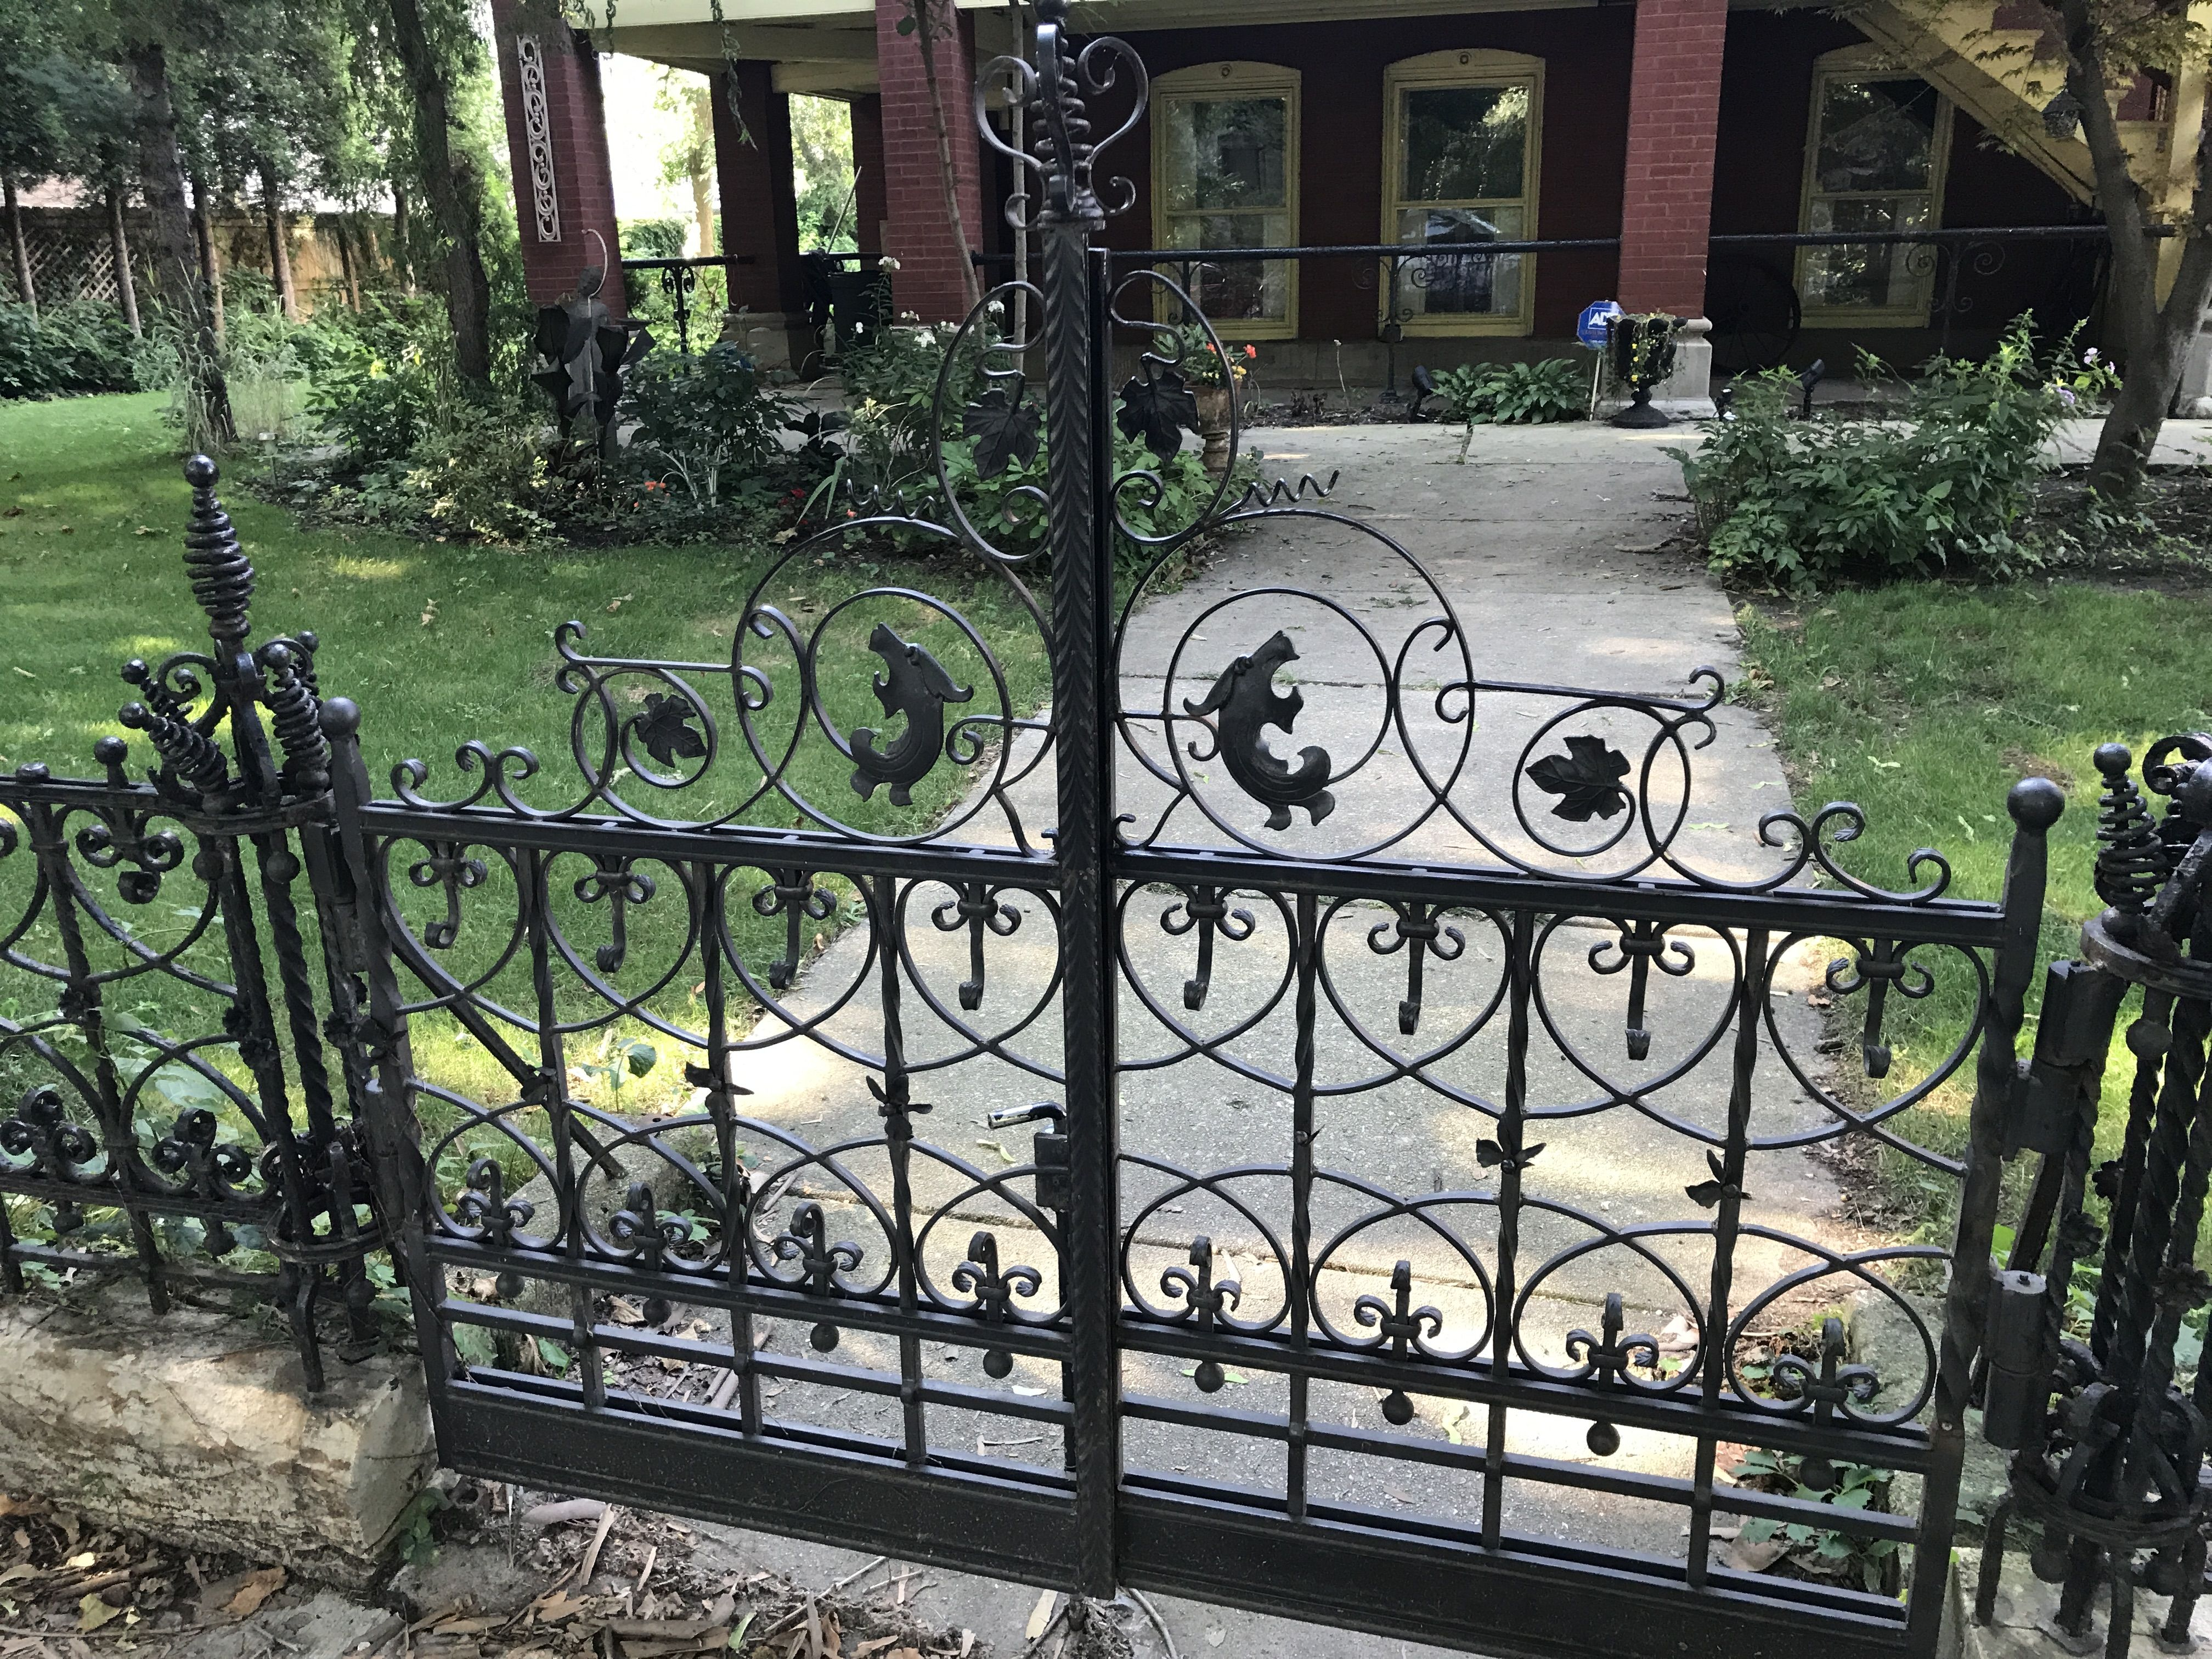 Wrought Iron Fence Chicago Wicker Park Wrought Iron Fences